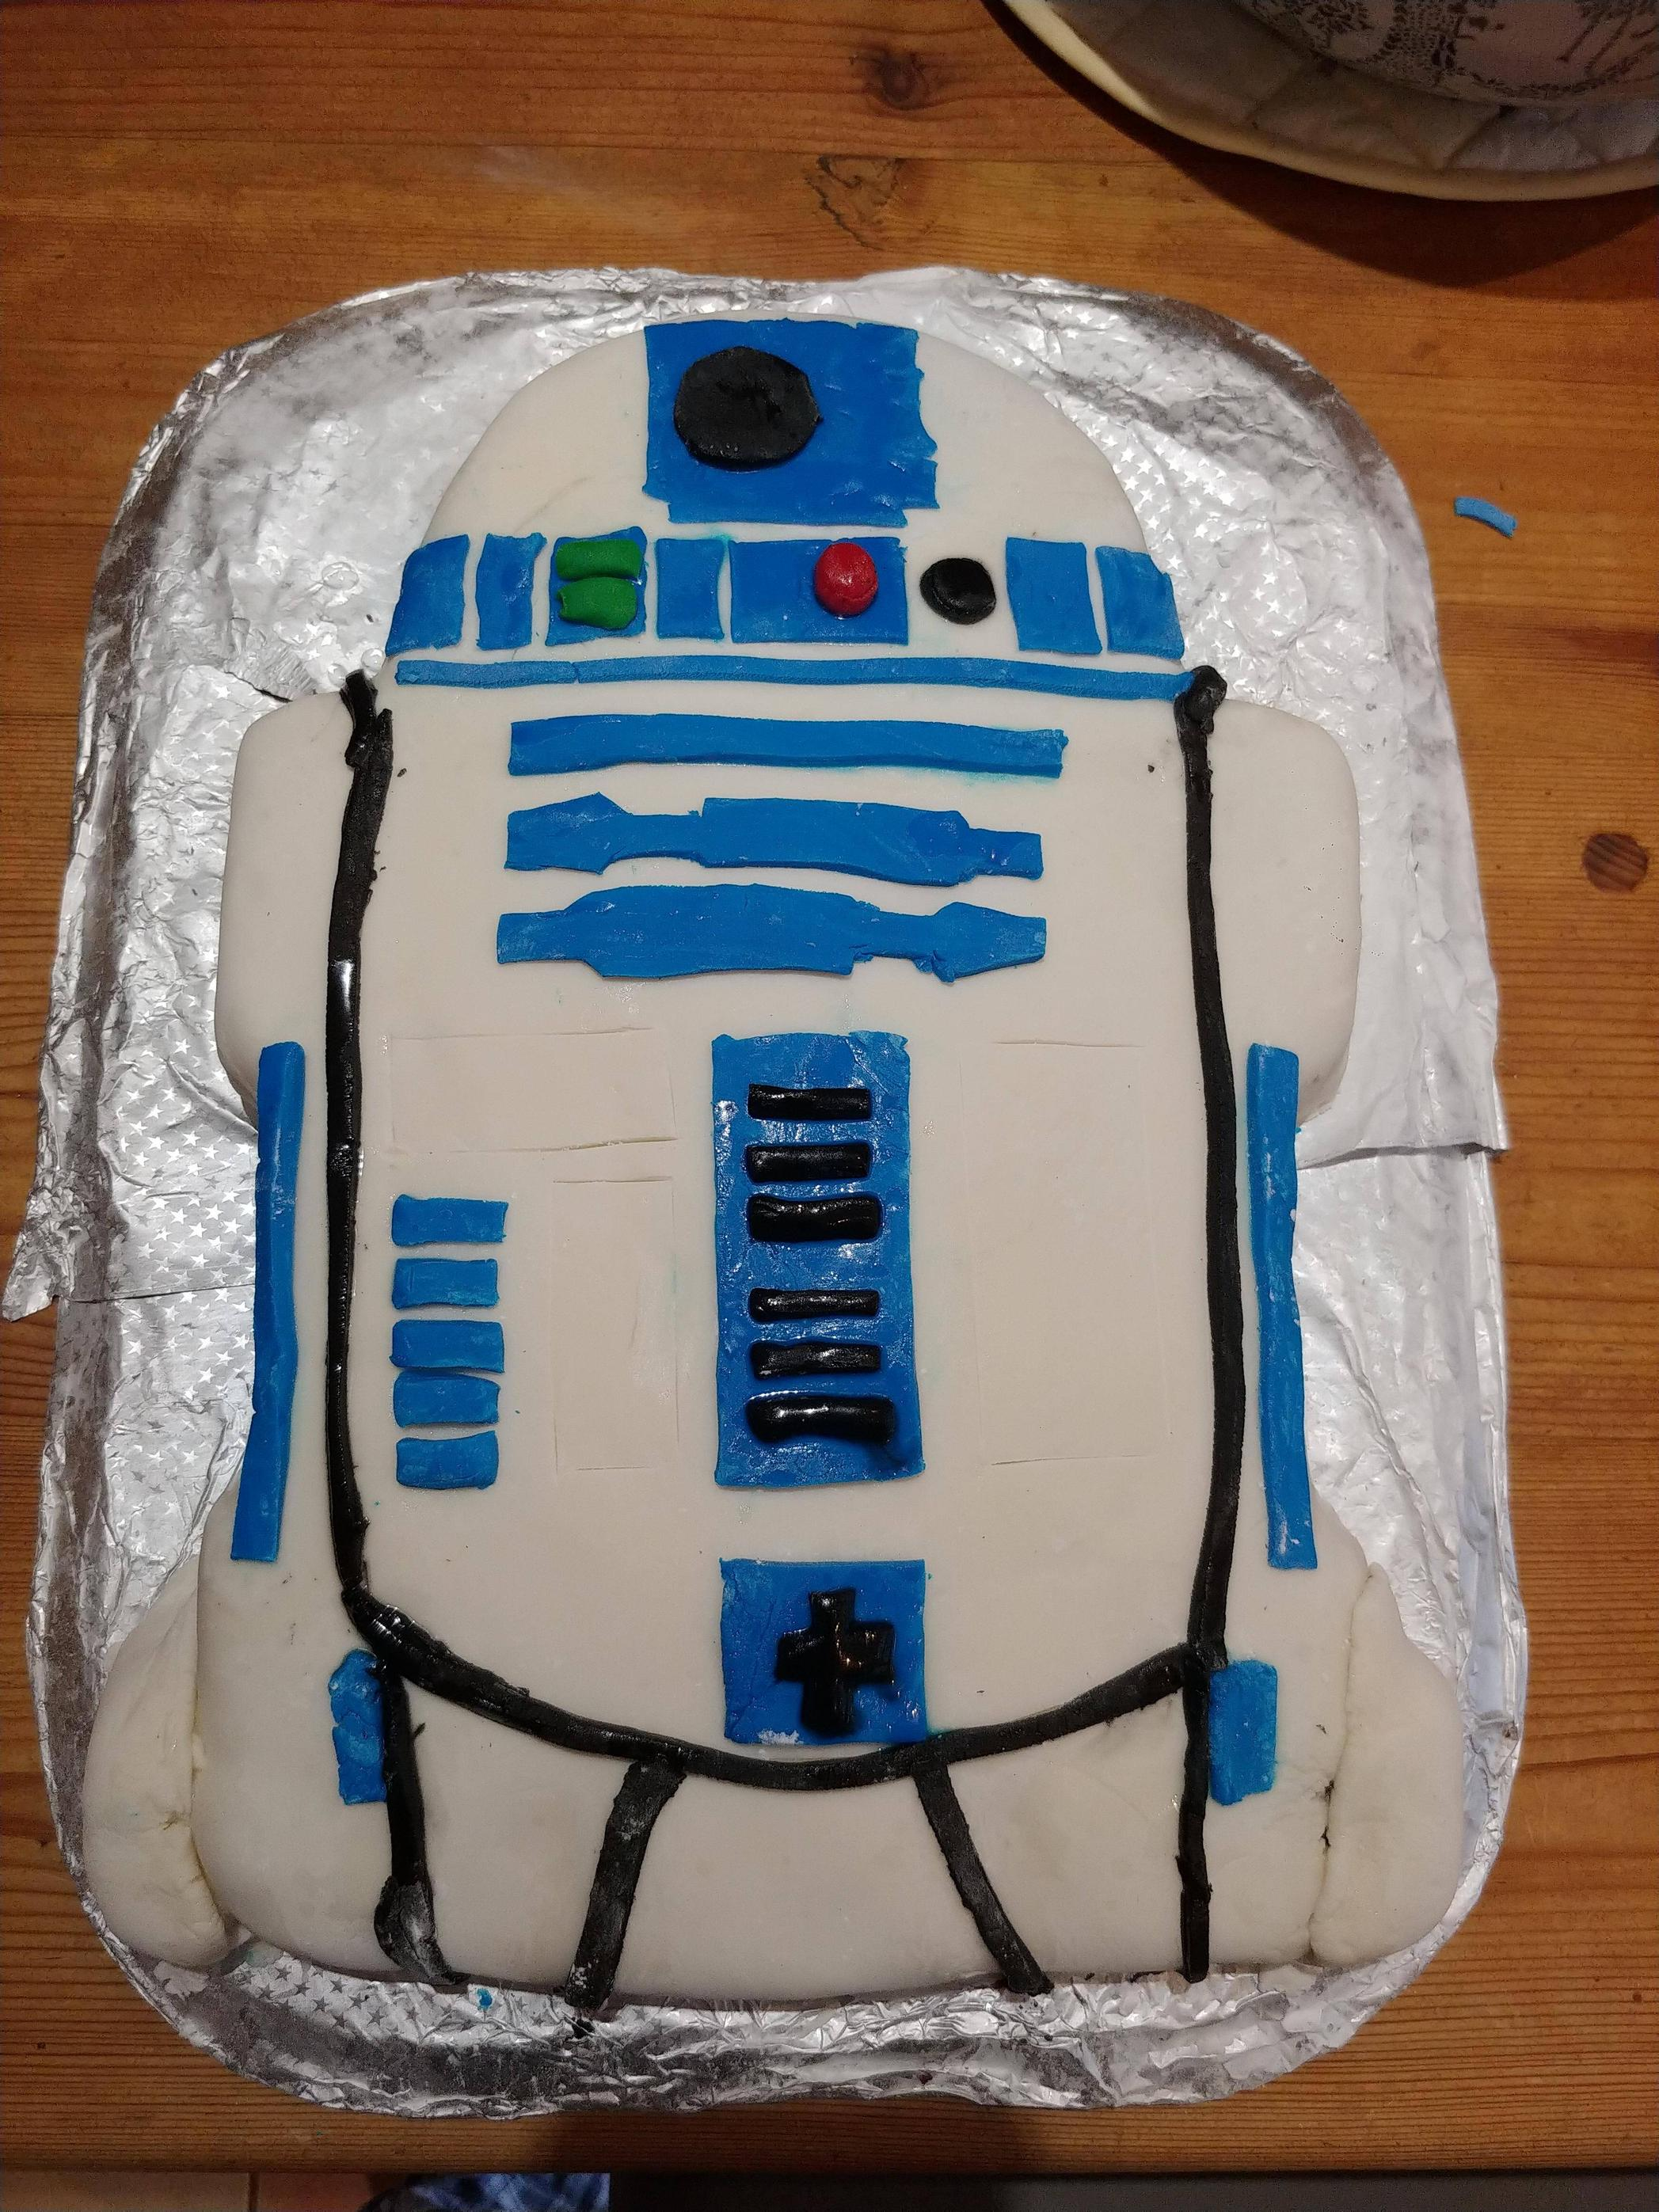 I made an R2-D2 cake for my girlfriend\'s surprise birthday party